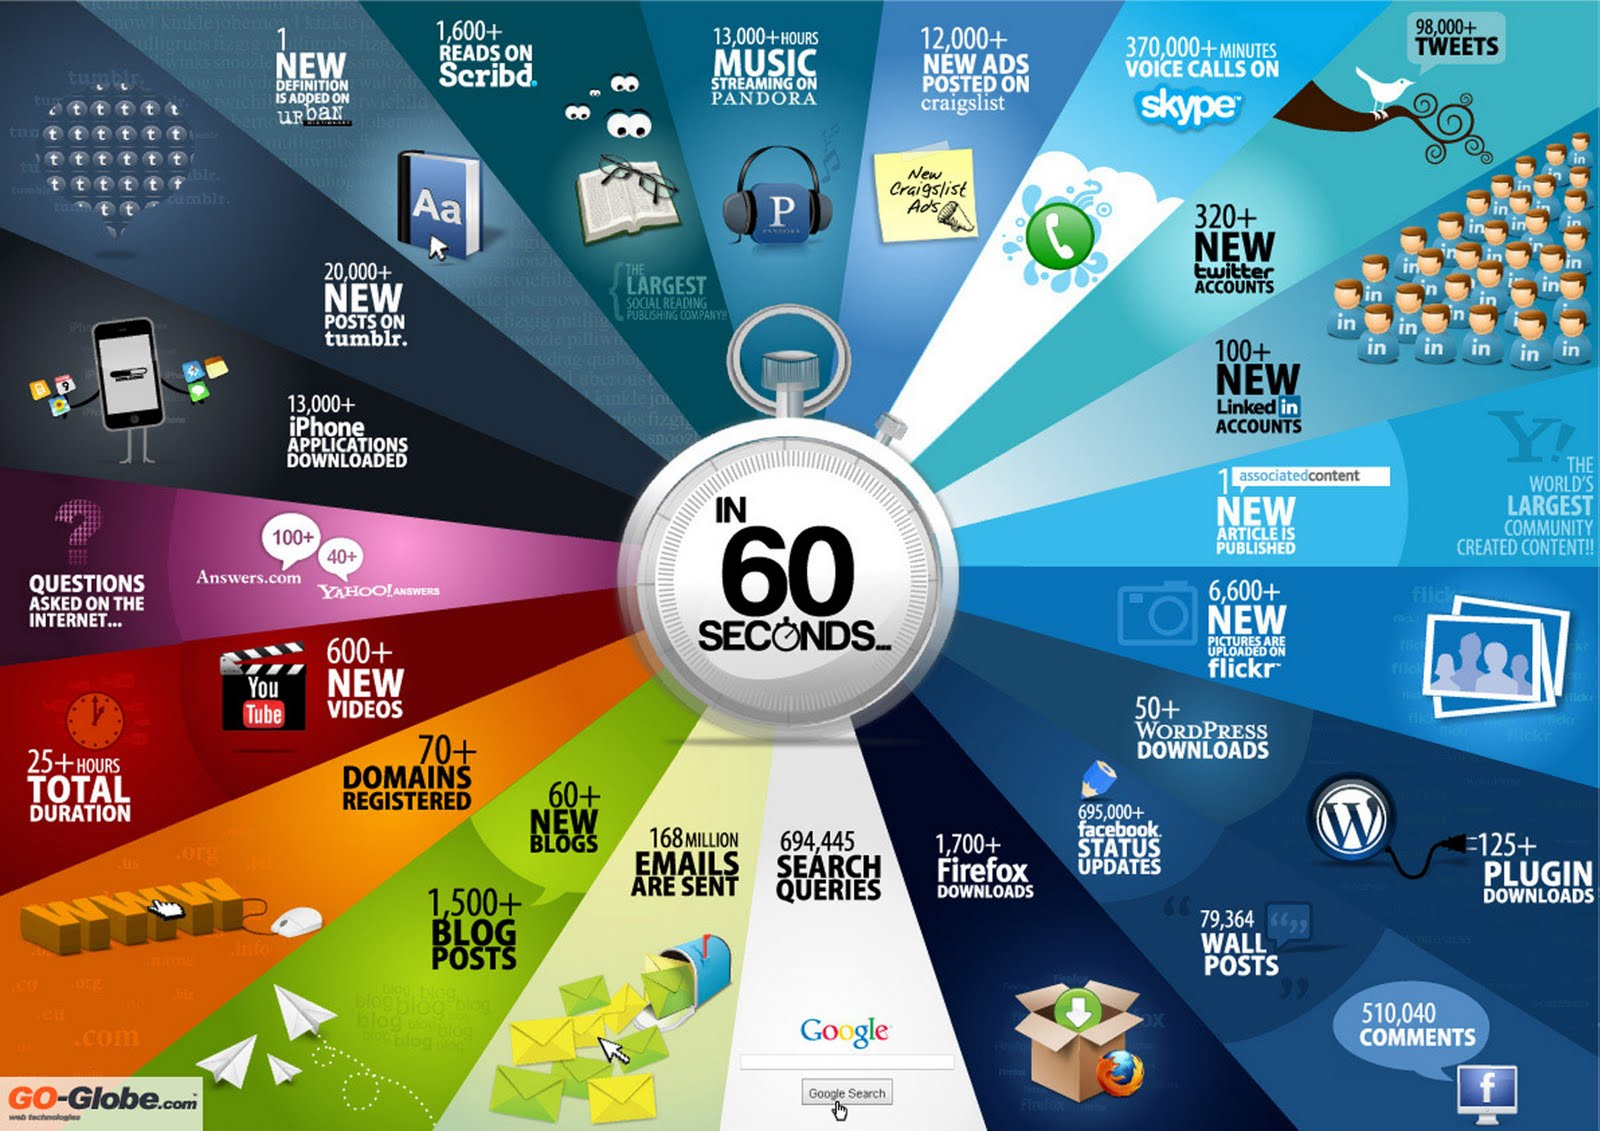 Ever Wondered What Happens On The Internet In 60 Seconds? (Video)